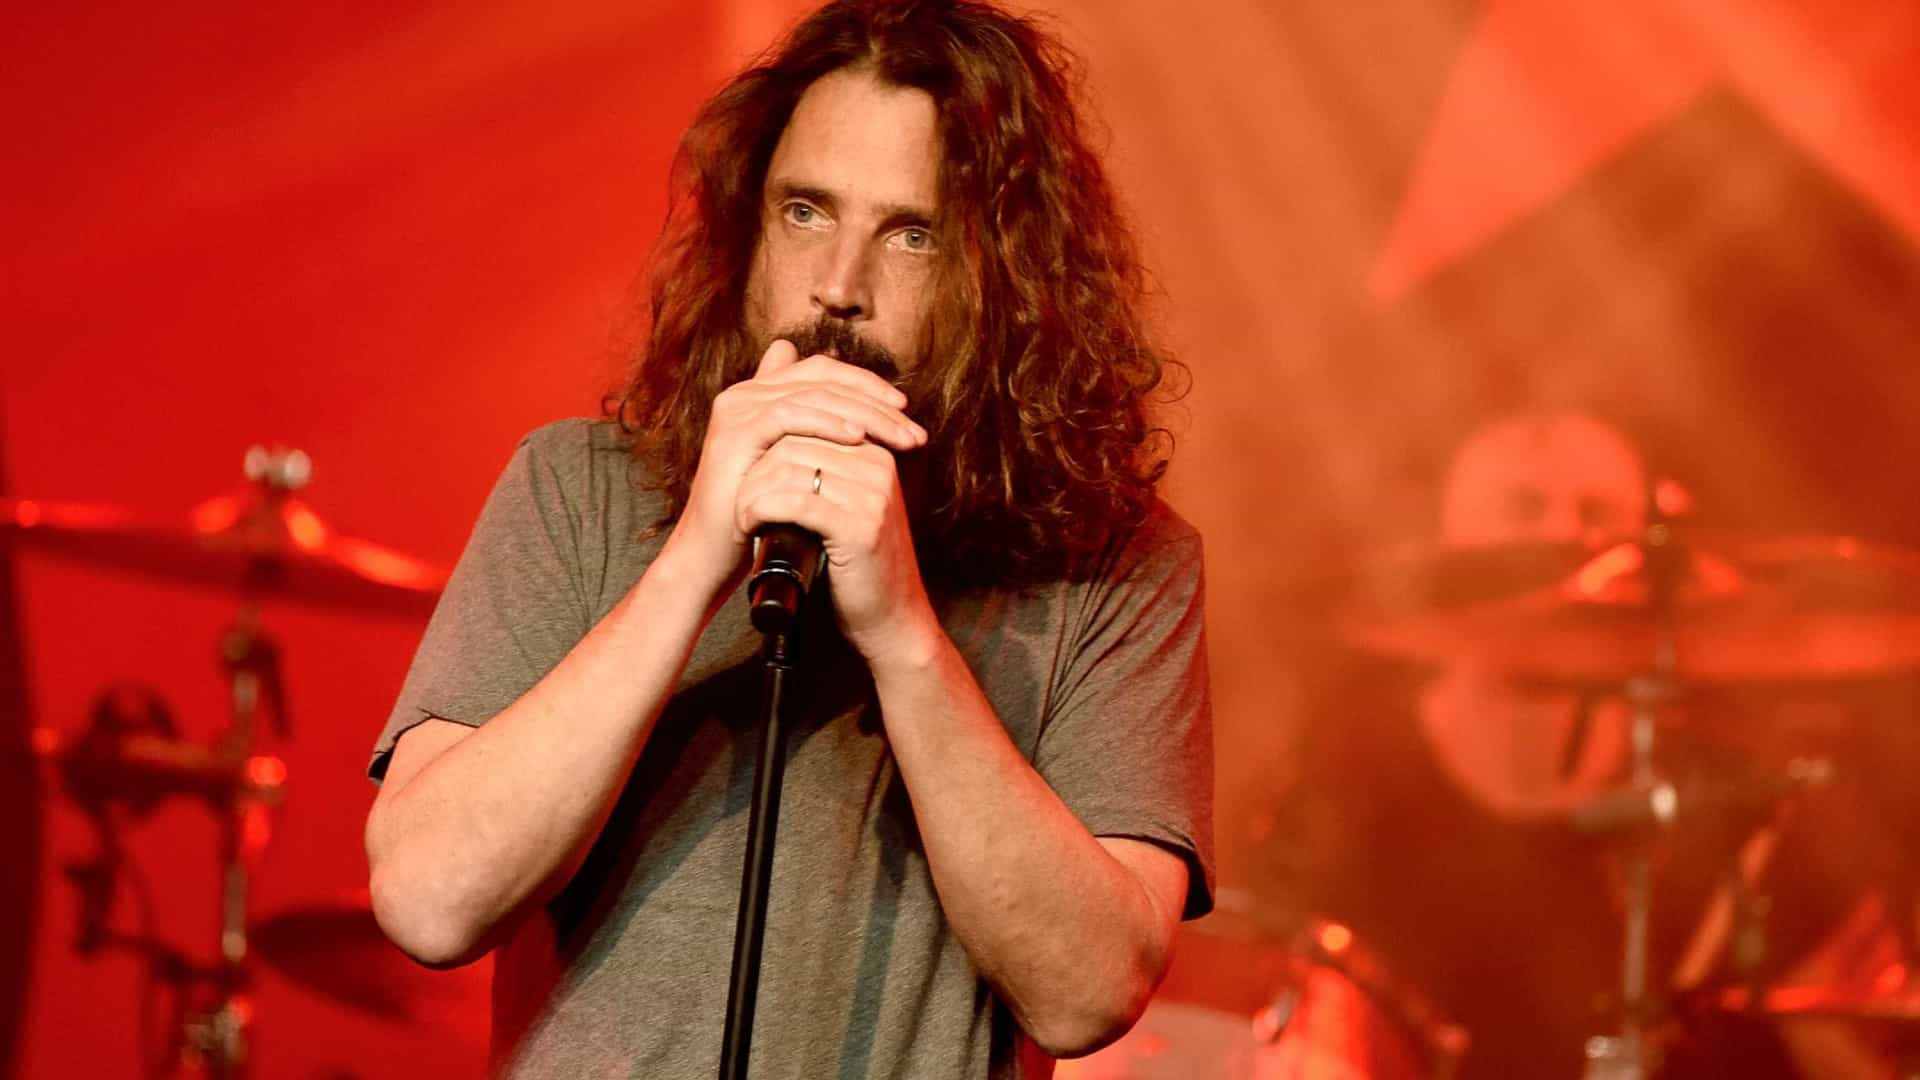 Suicídio por enforcamento é a causa da morte de Chris Cornell